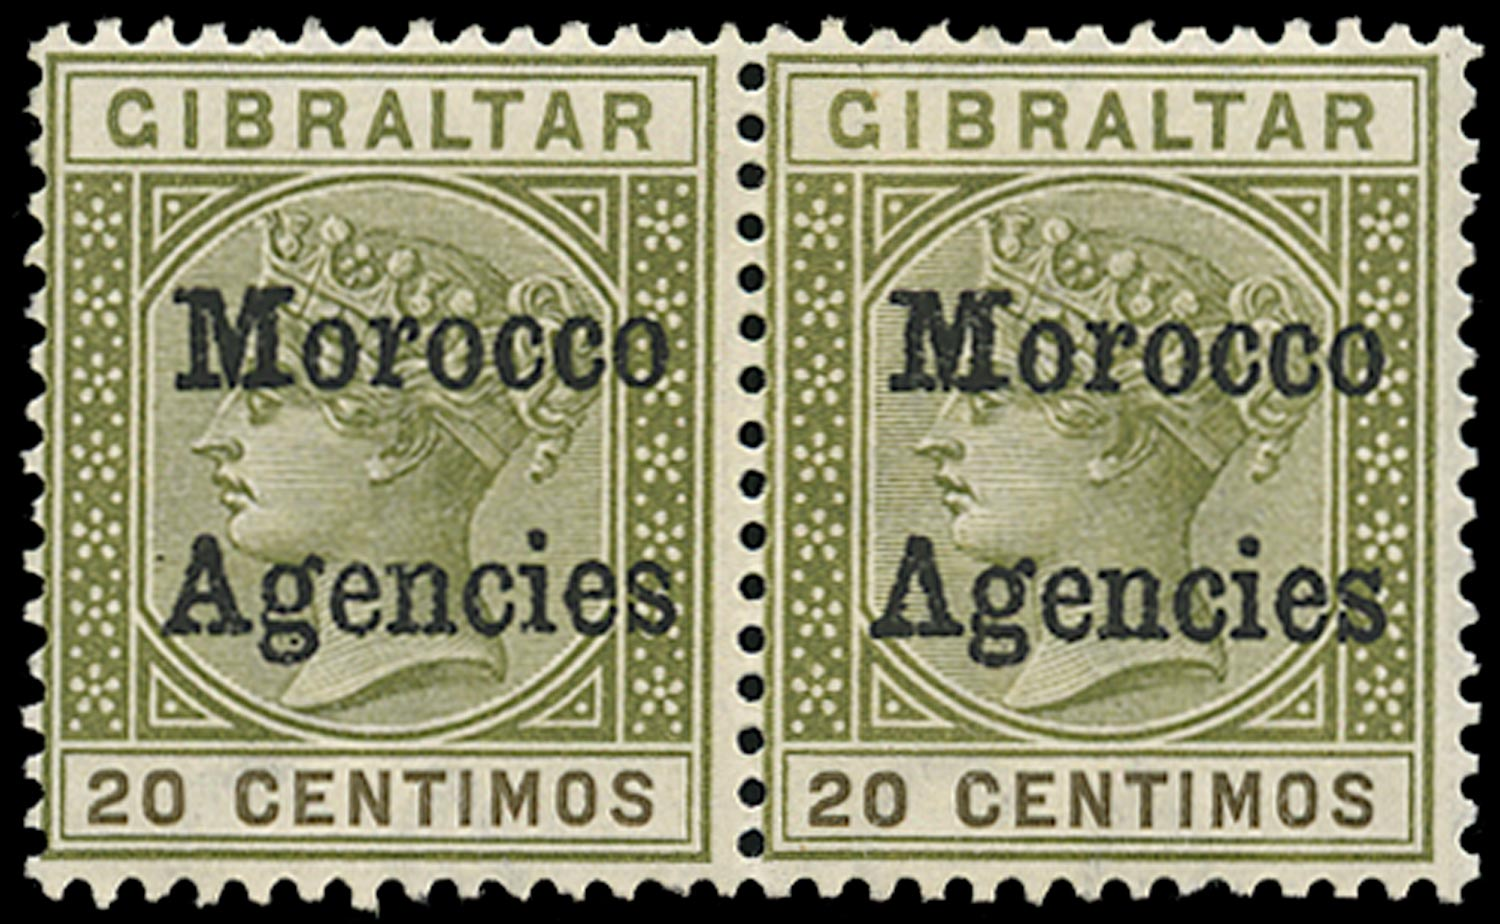 MOROCCO AGENCIES 1898  SG3a Mint QV 20c olive-green and brown variety Inverted V for A